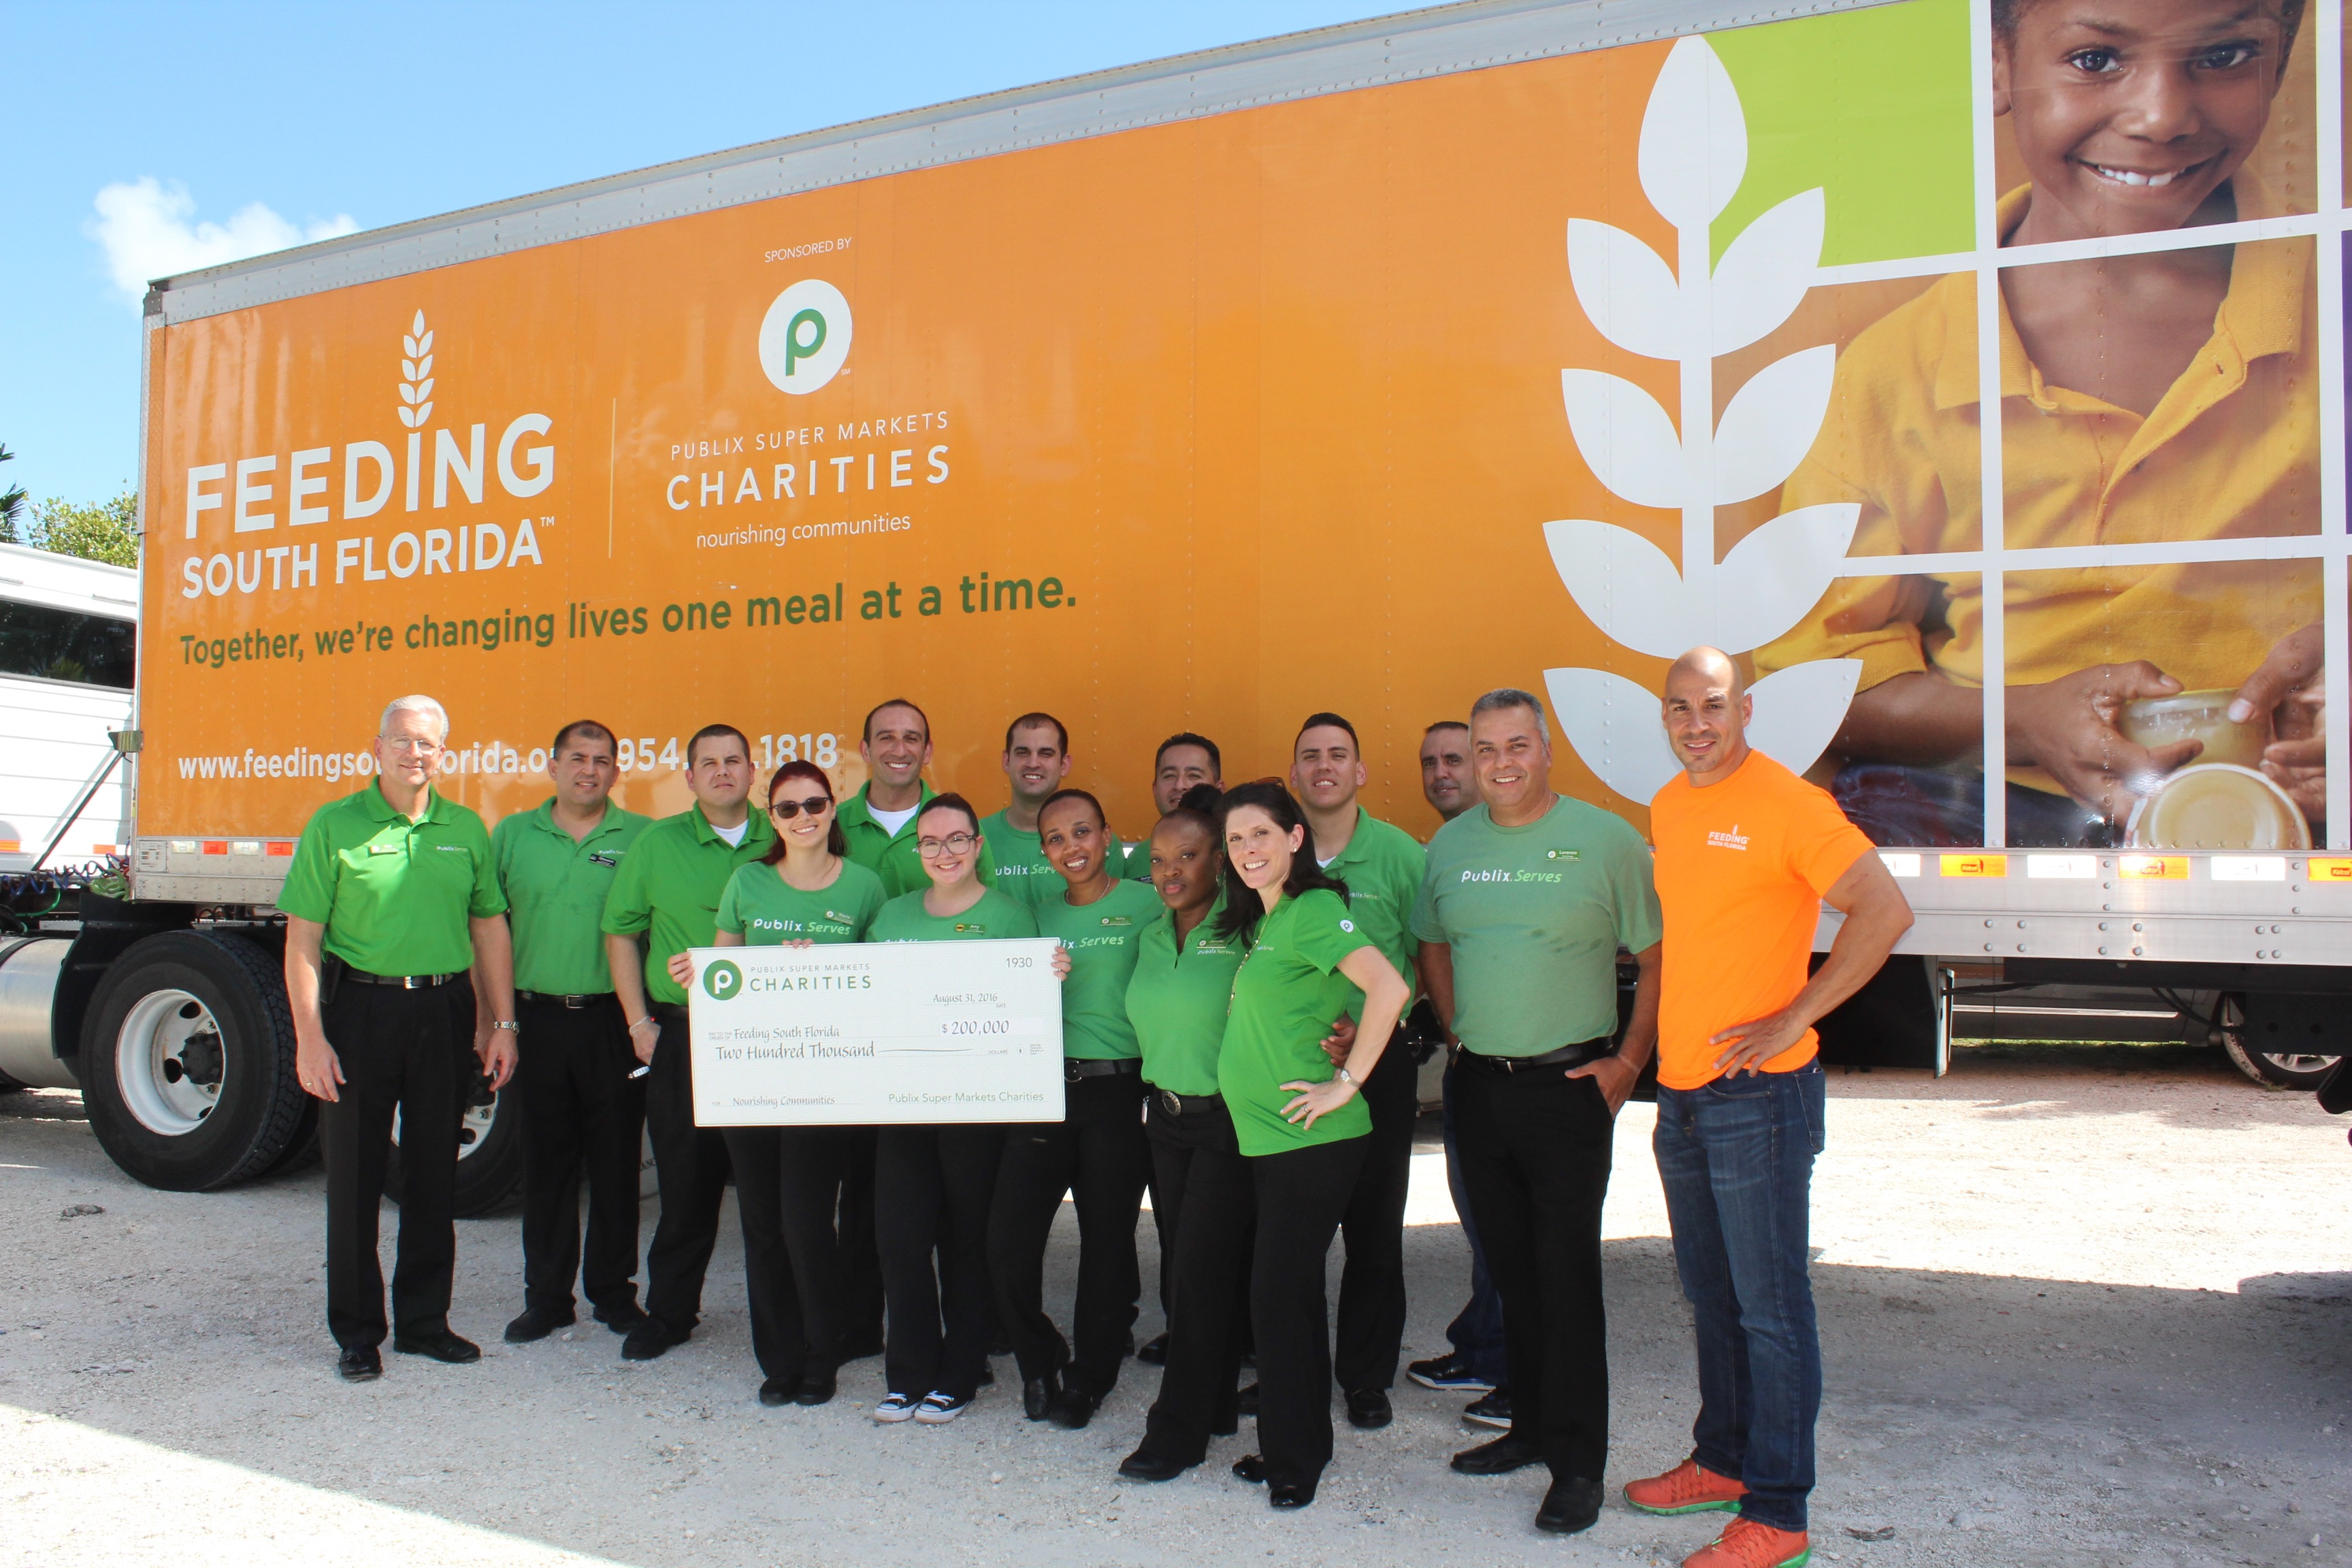 Publix Charities donates $200K to Feeding South Florida